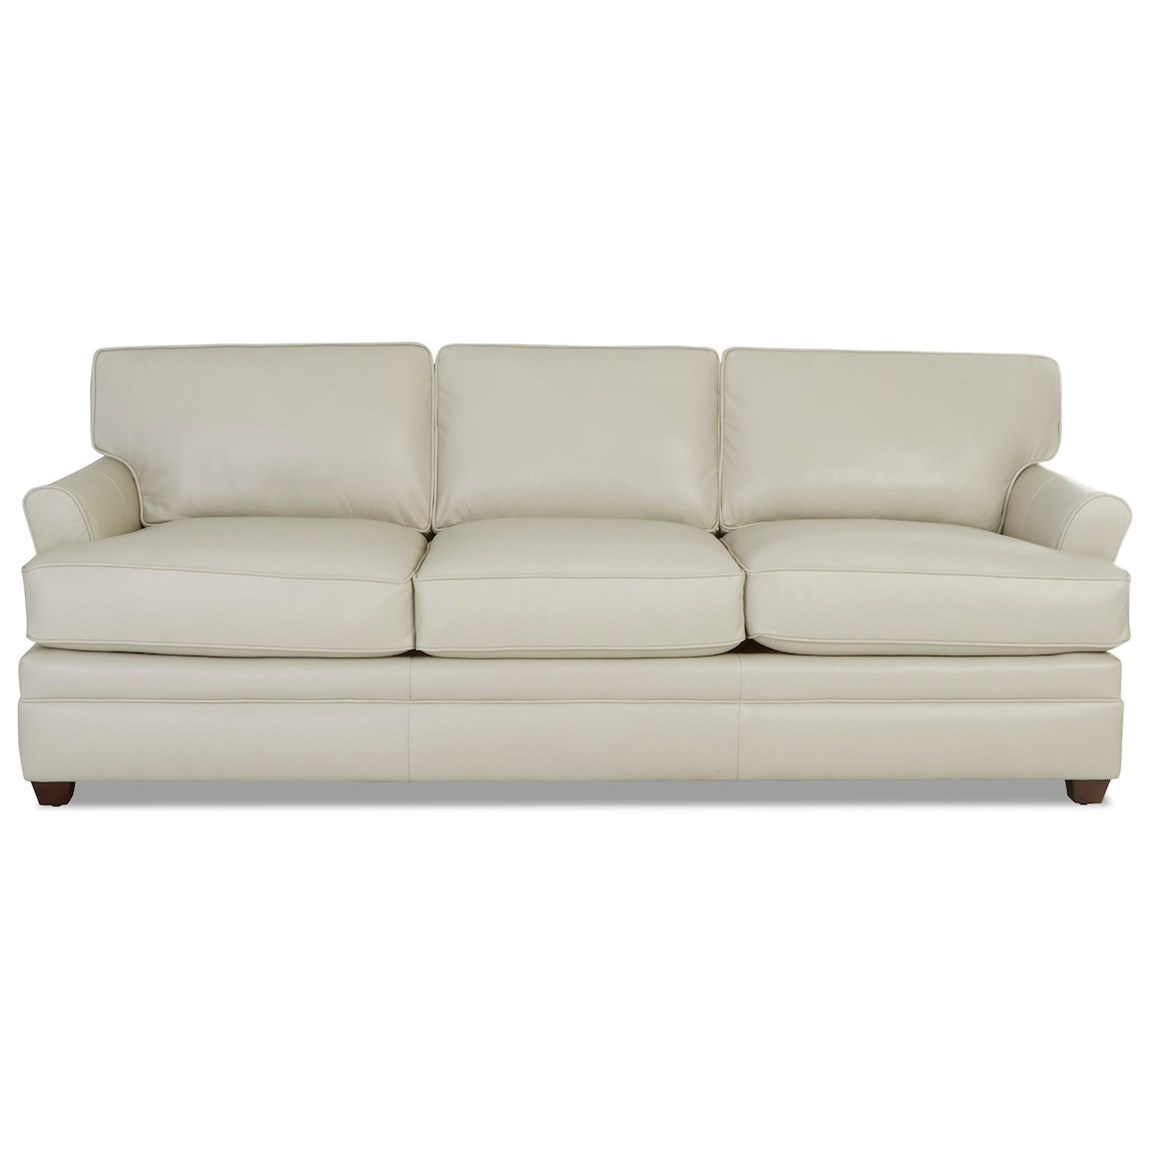 Transitional Leather Sofa with Flared Arms